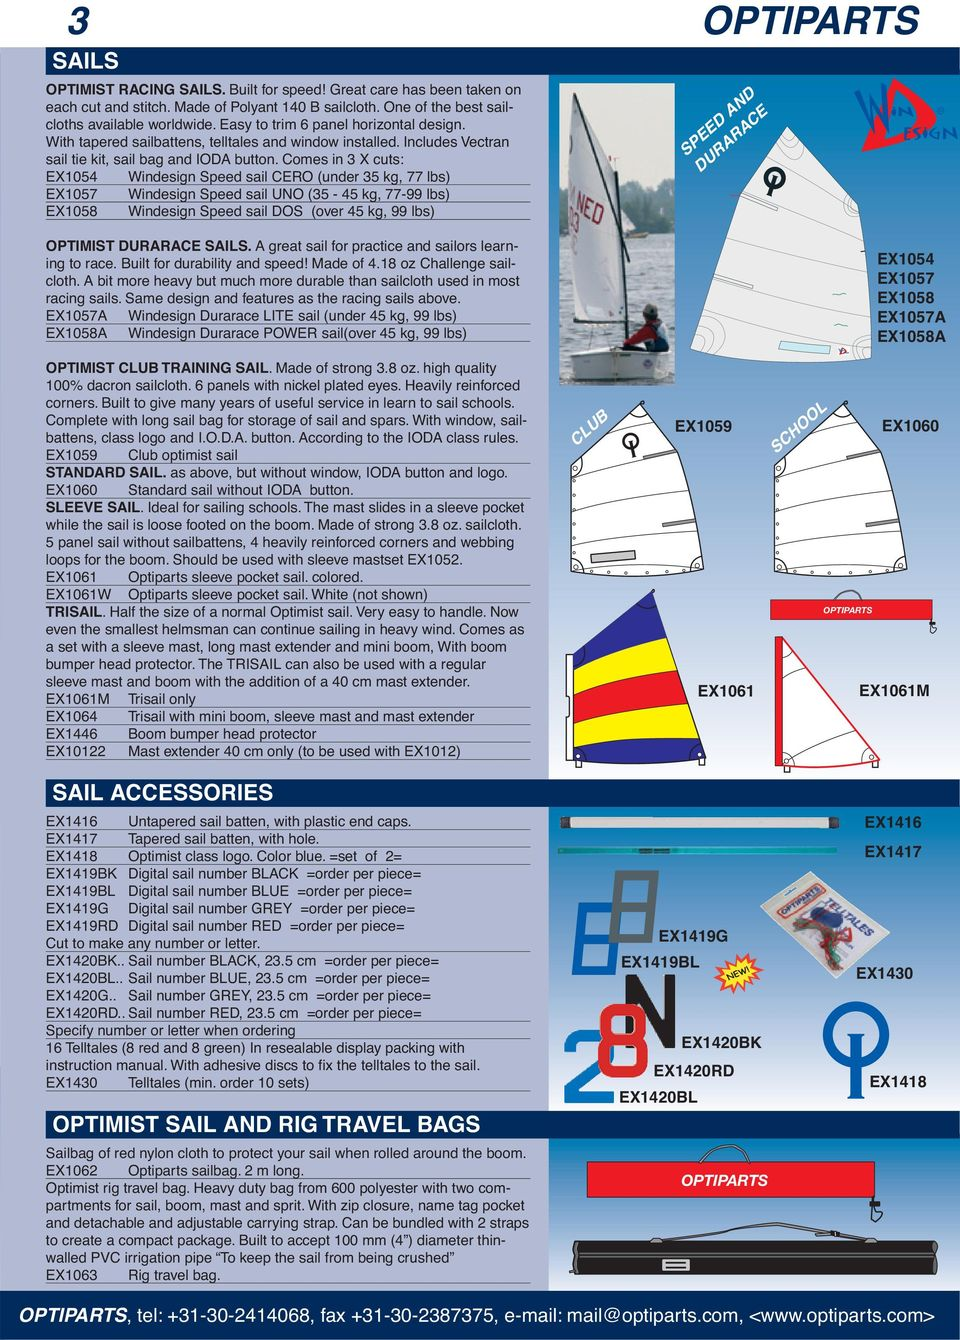 Comes in 3 X cuts: EX1054 Windesign Speed sail CERO (under 35 kg, 77 lbs) EX1057 Windesign Speed sail UNO (35-45 kg, 77-99 lbs) EX1058 Windesign Speed sail DOS (over 45 kg, 99 lbs) SPEED AND DURARACE